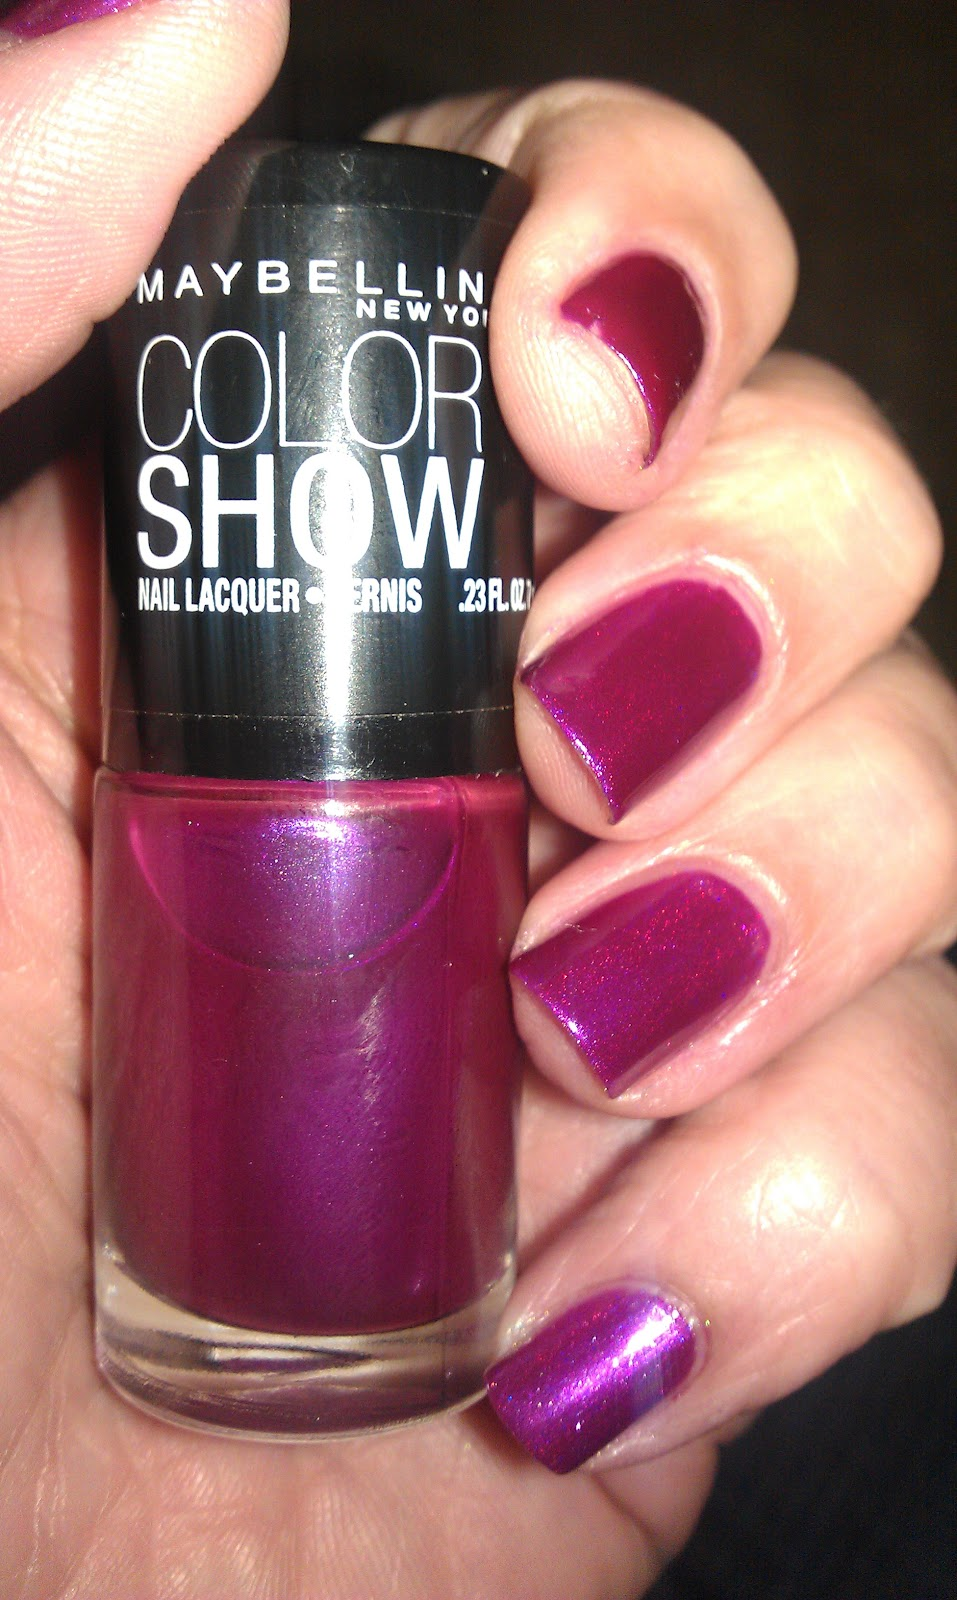 Maybelline Color Show Nail Art Masterclass: Maybelline Color Show Nail Polish Lacquer (CHOOSE YOUR